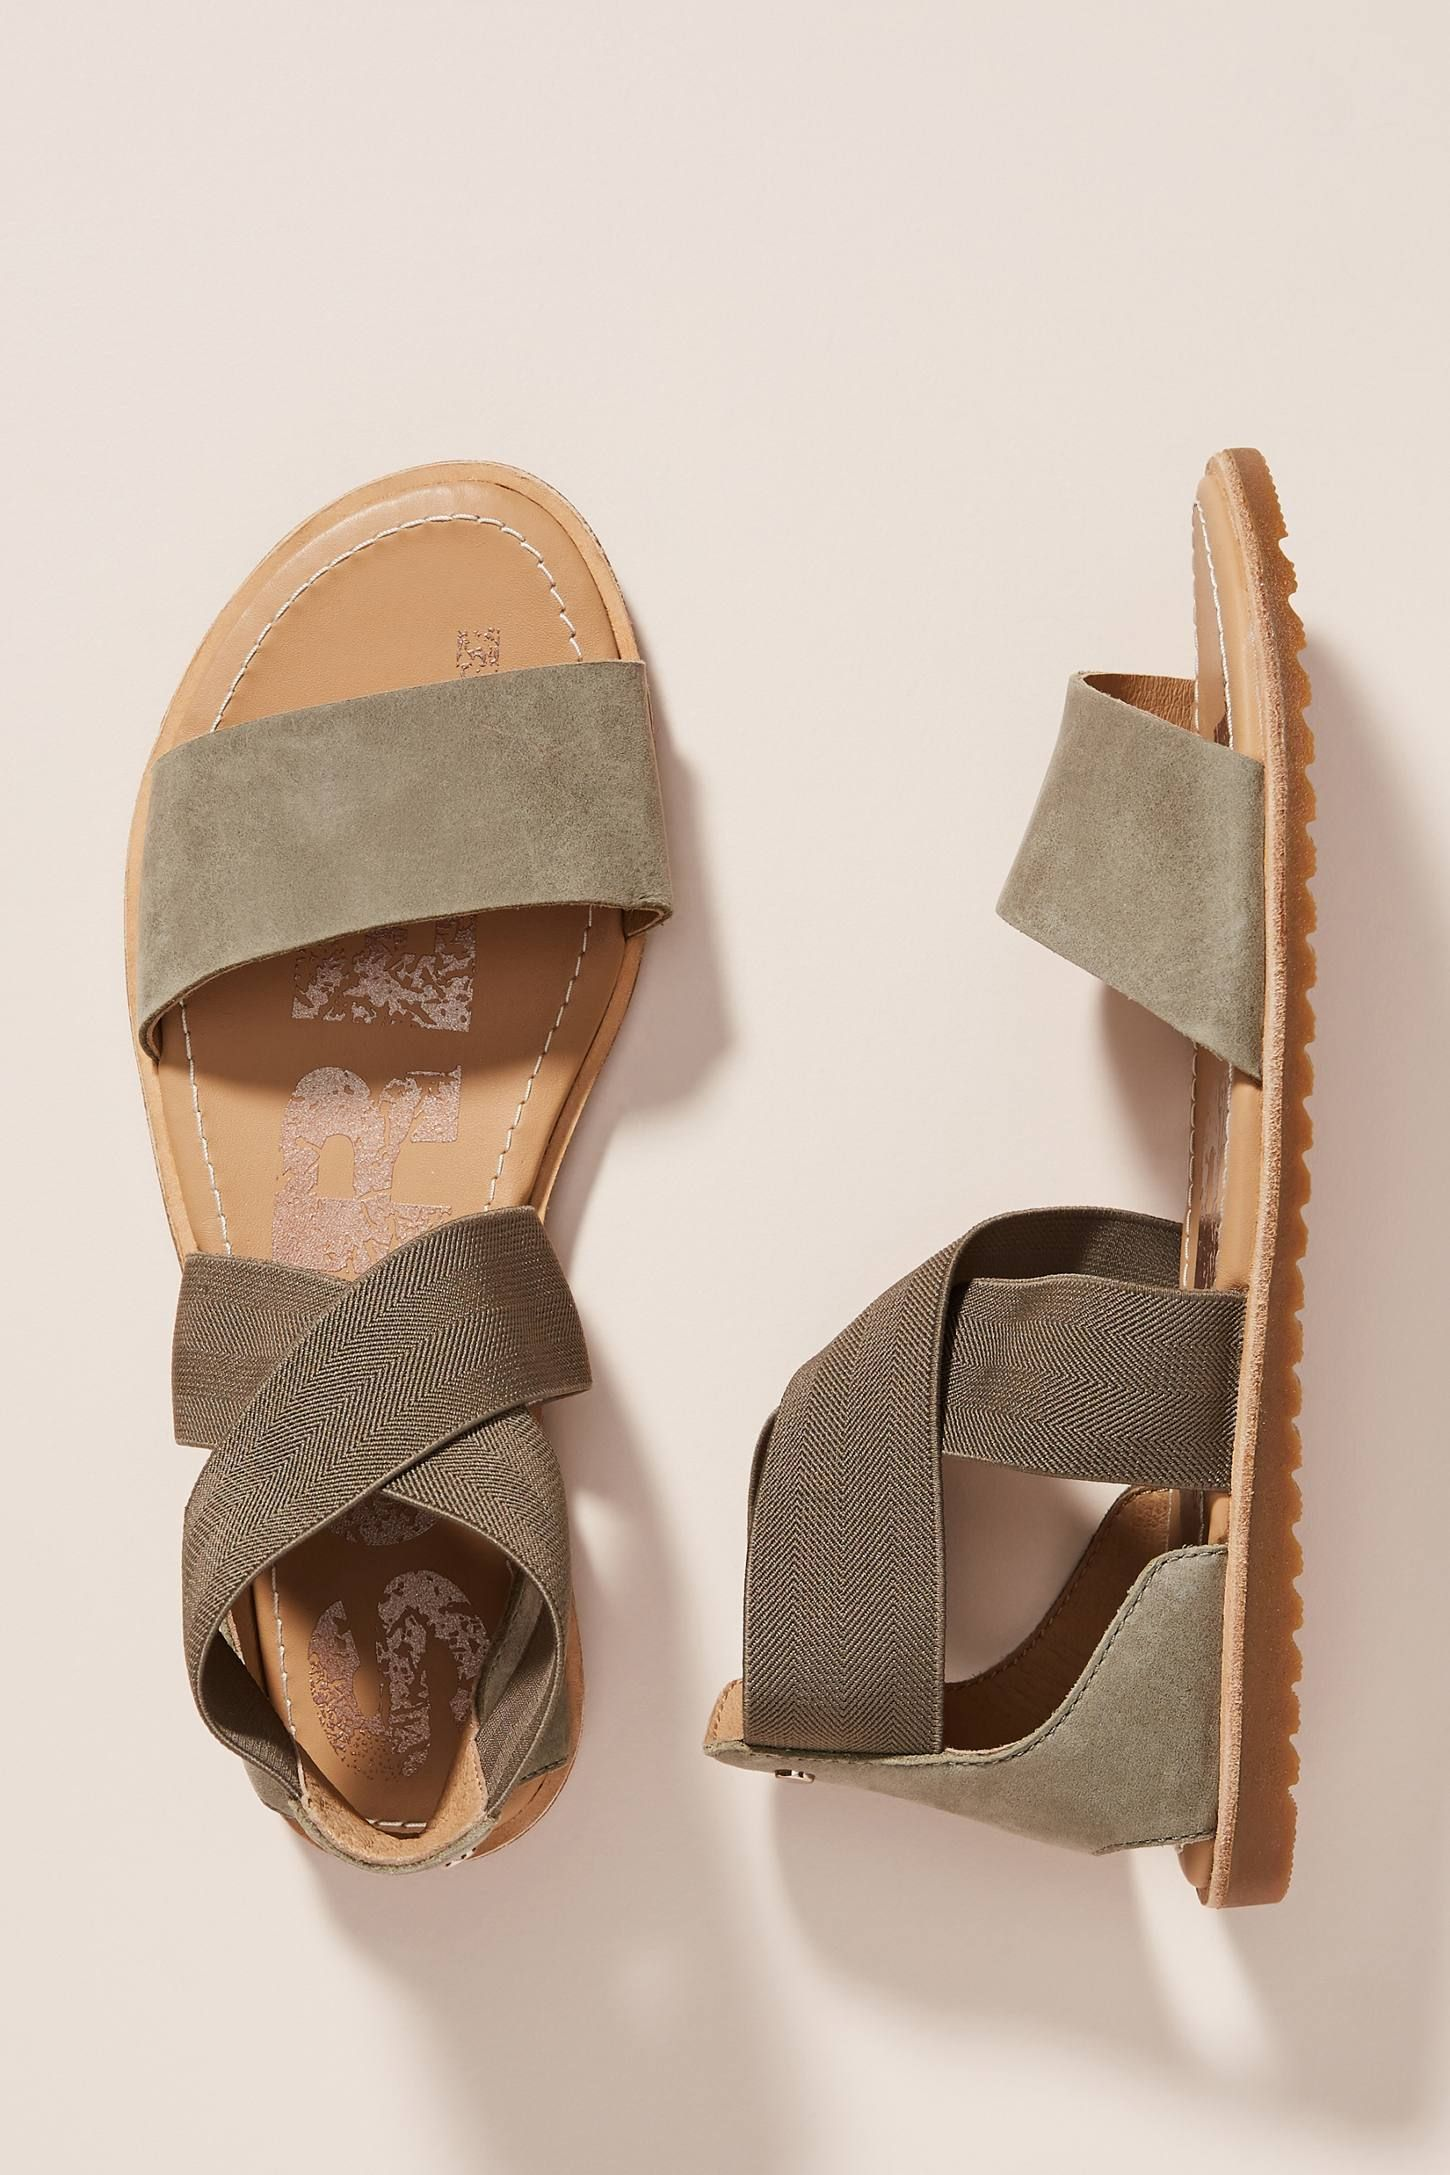 Step Into Spring Wearing This Pretty Pair Which Offers A Cushy Insole To Ensure You Stay Comfortable And Stylish Spring Shoes Simple Sandals Womens Sandals